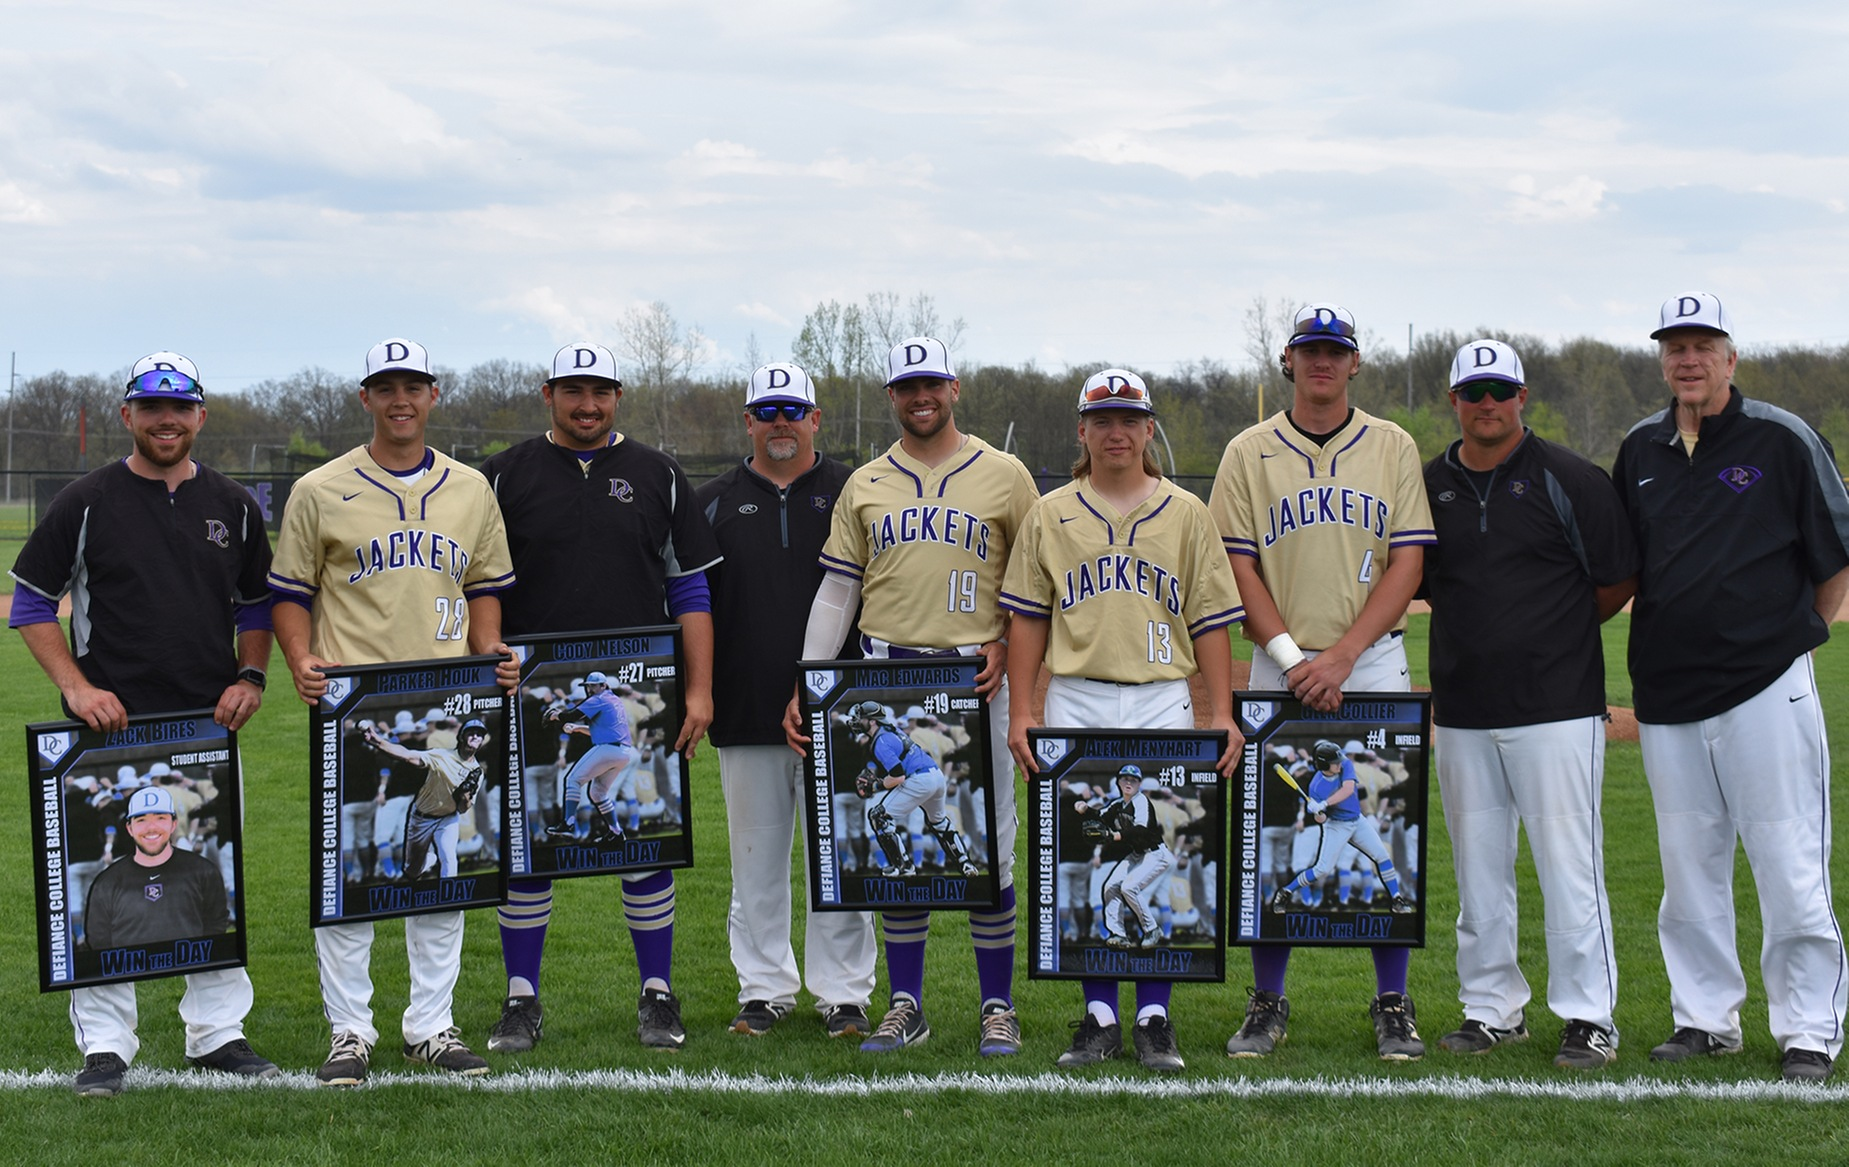 Yellow Jackets Fall to Nationally Ranked Franklin on Senior Day